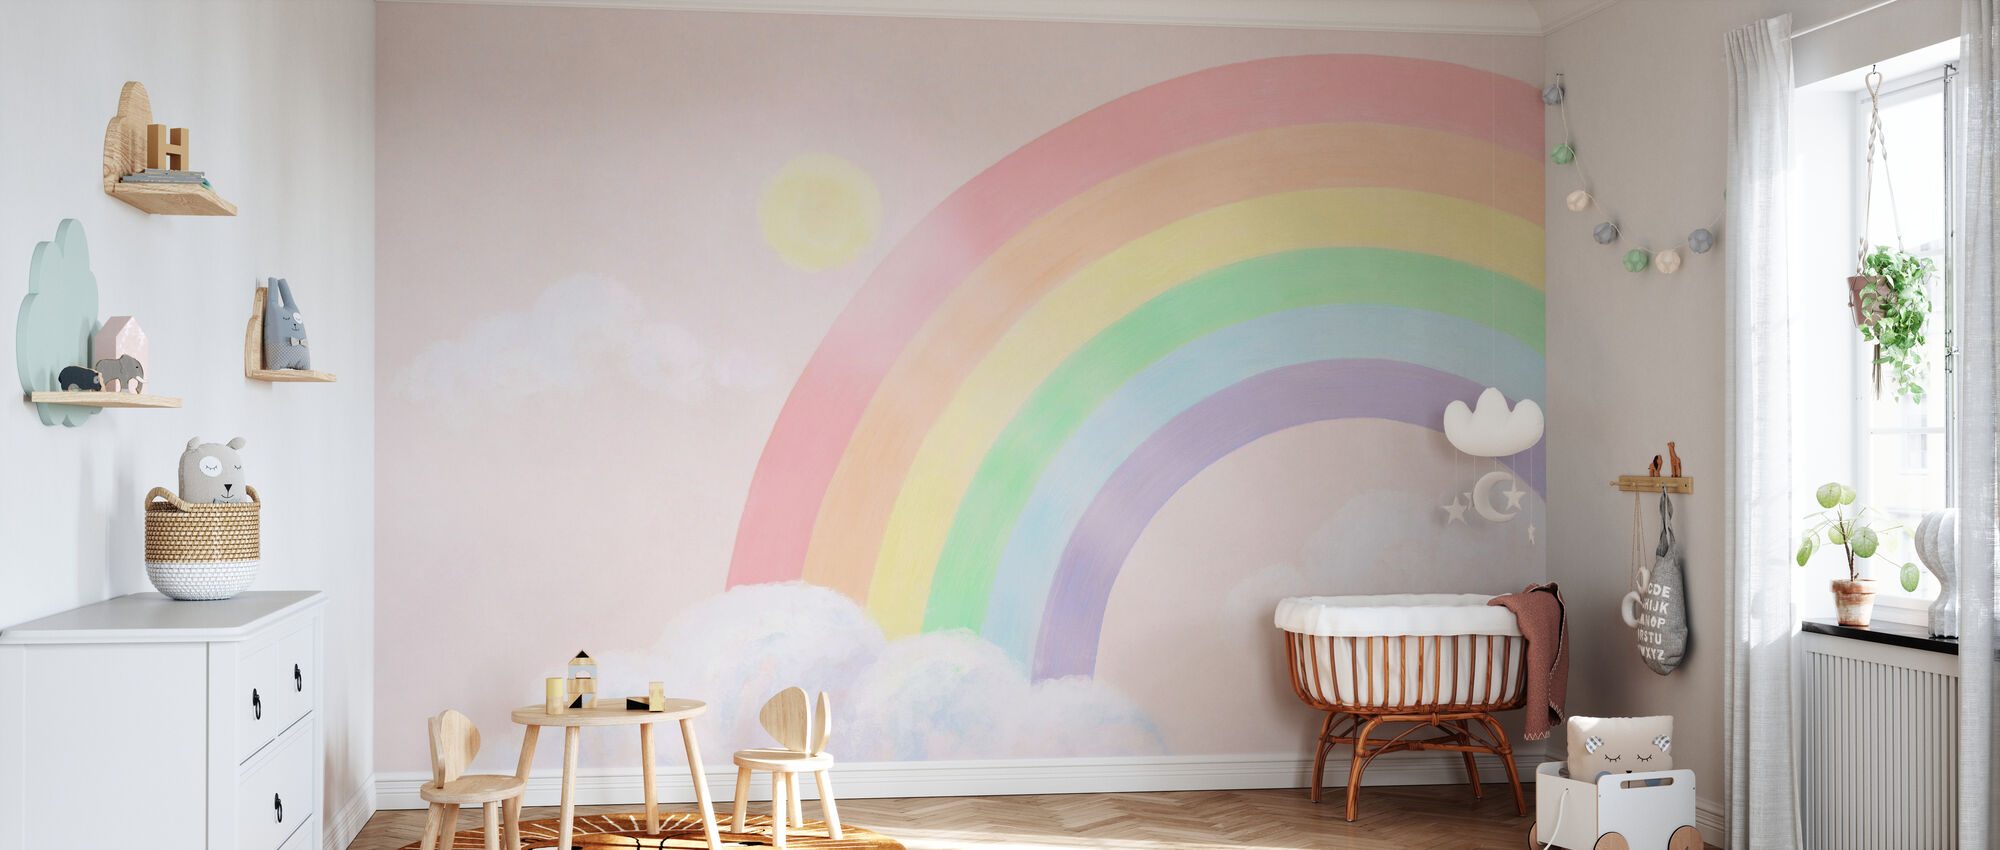 Sparkling Rainbow III - Wallpaper - Nursery